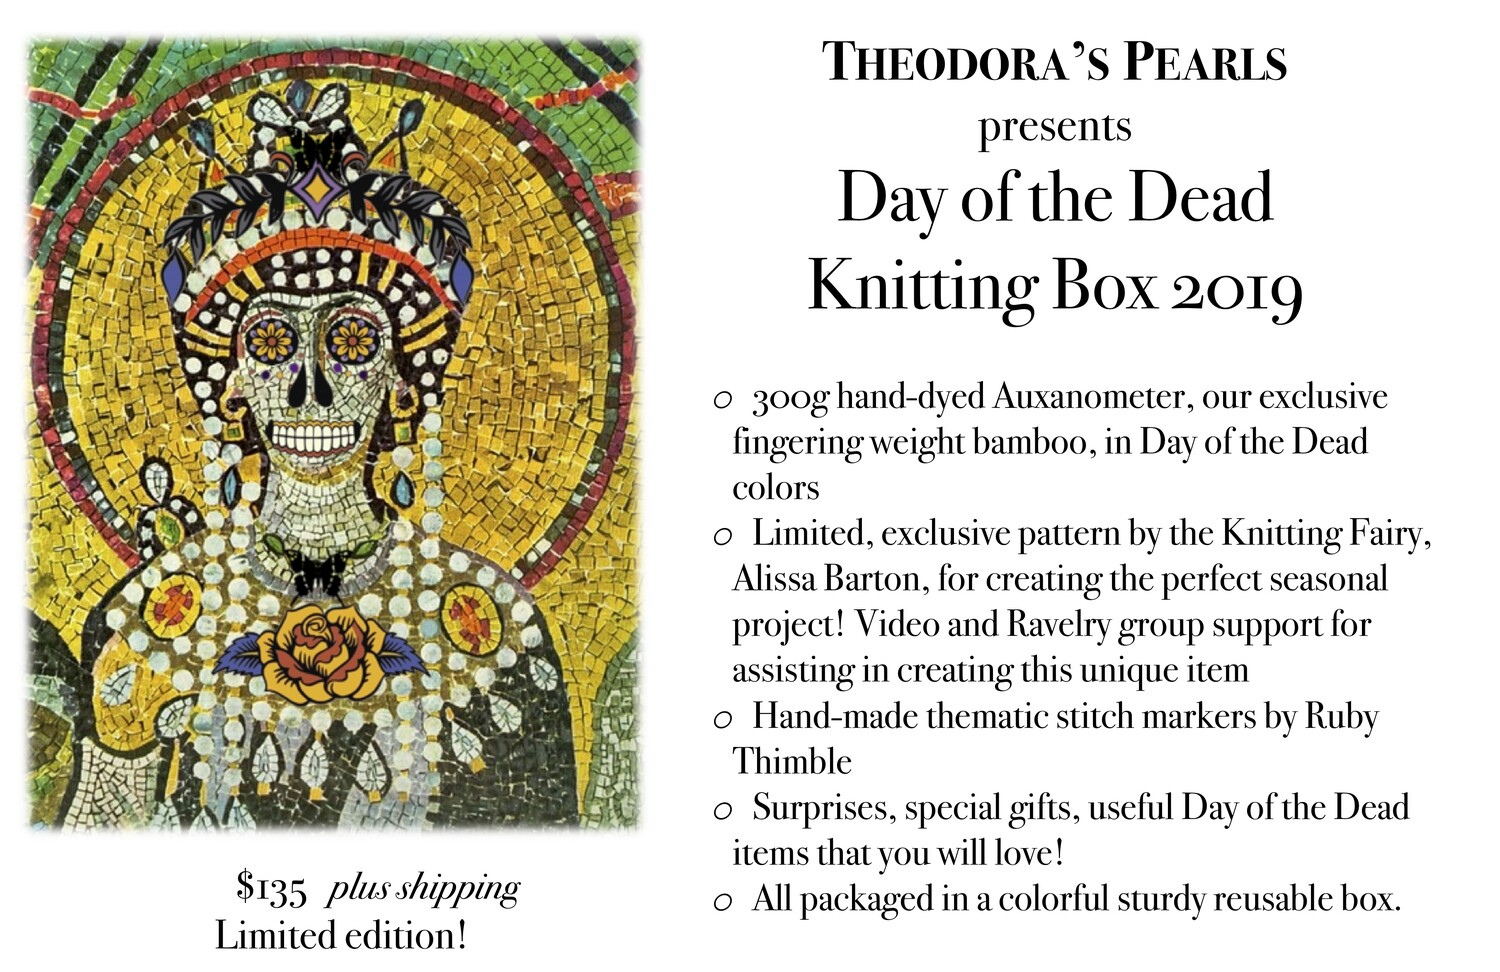 Day of the Dead Box 2019 - Shipped